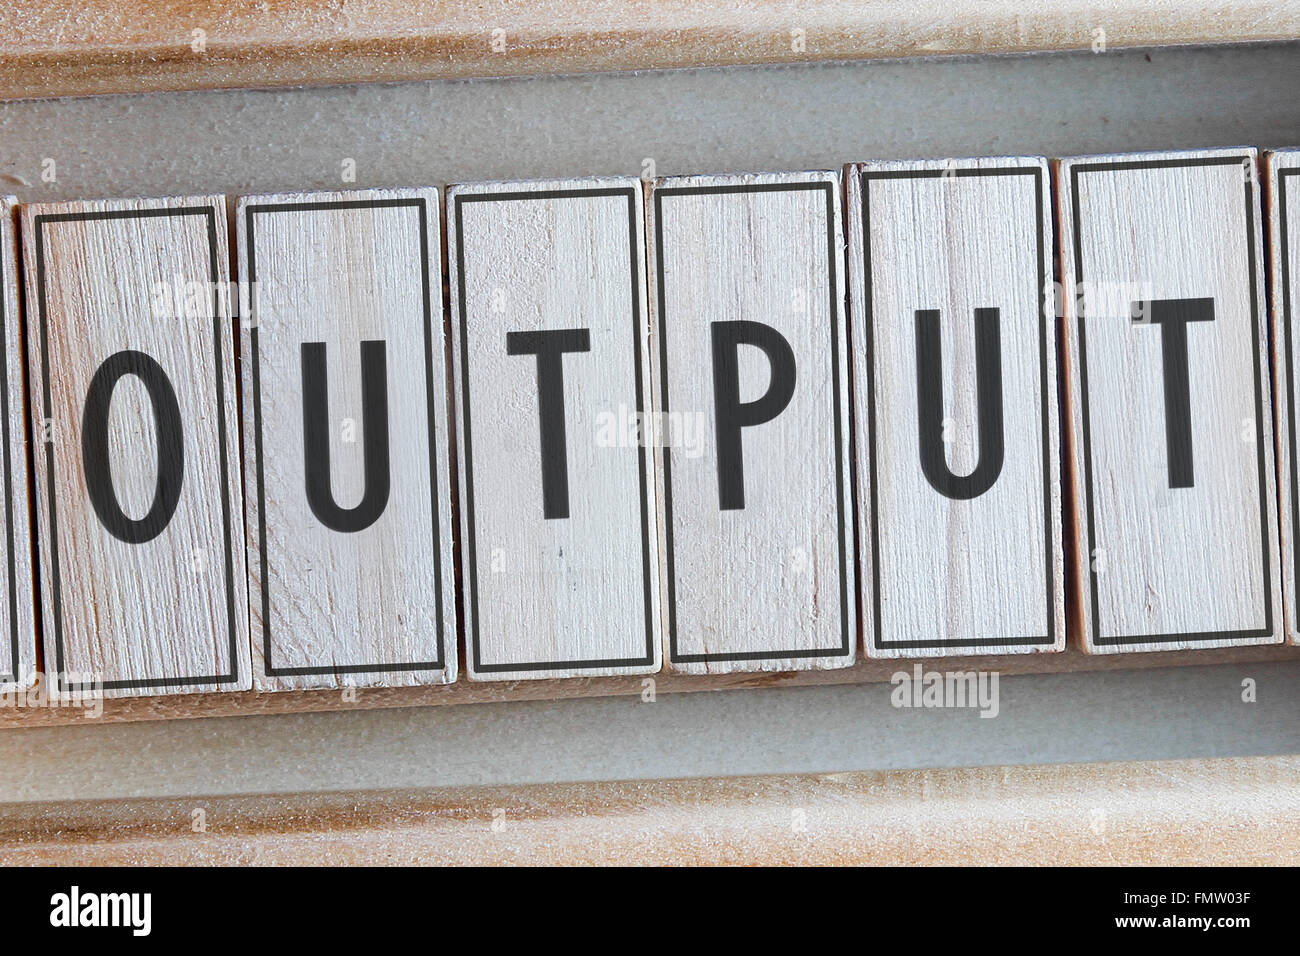 output word written on wood - Stock Image